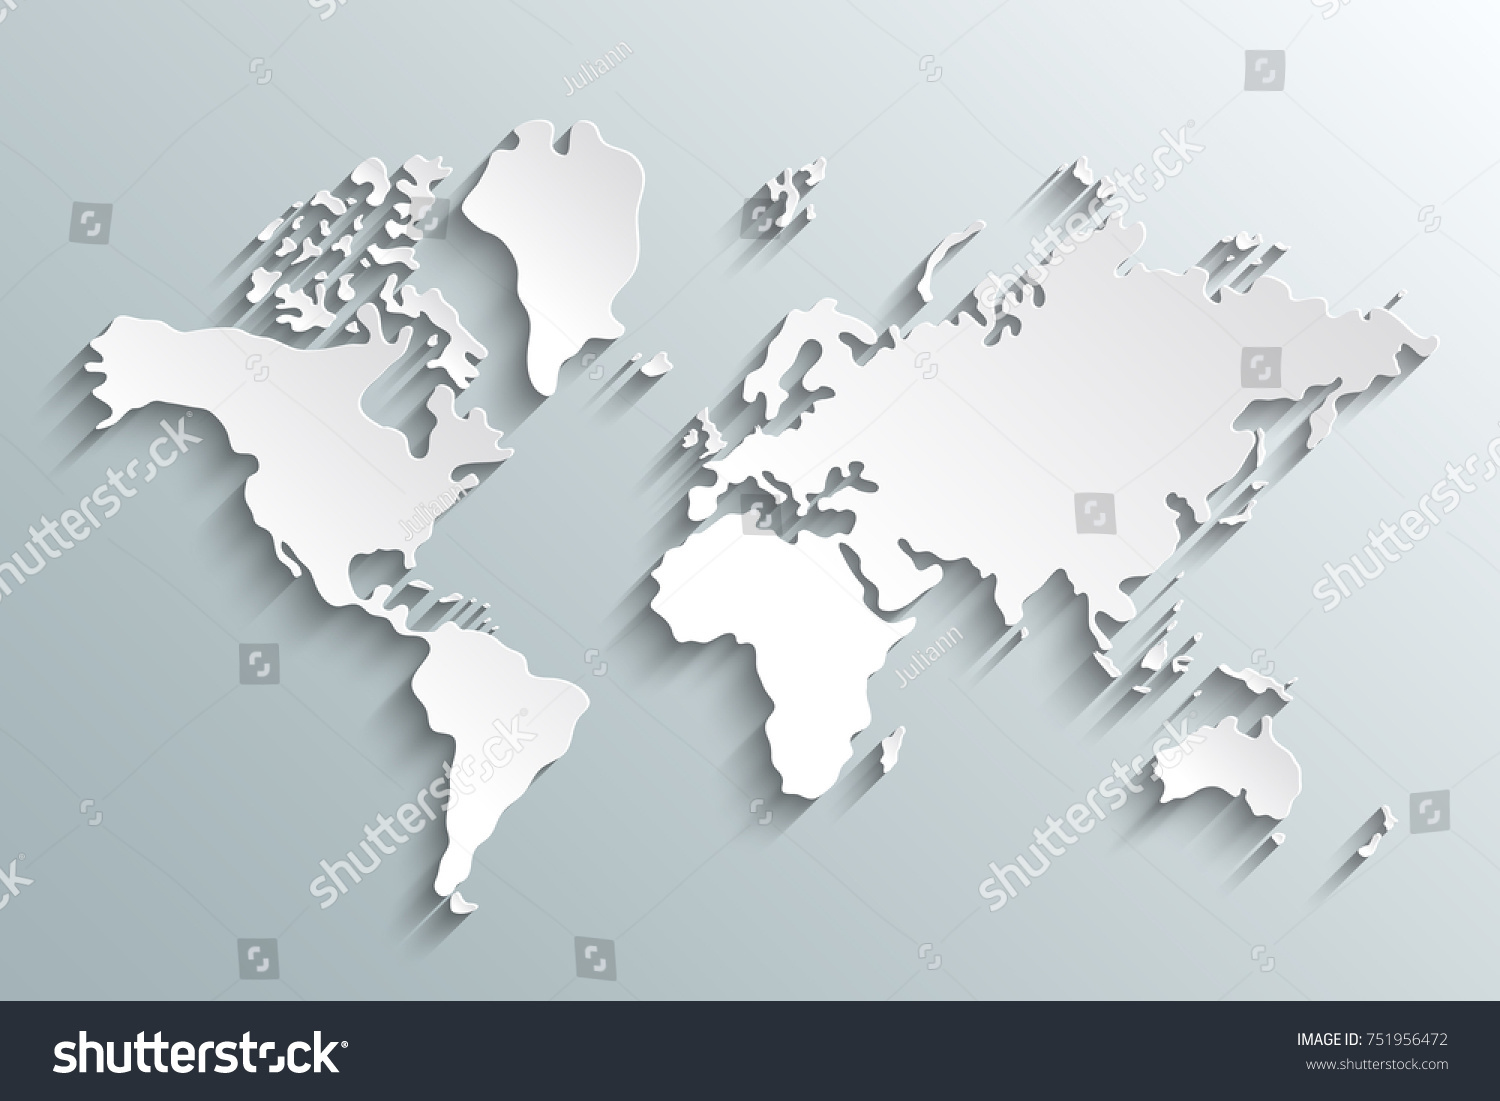 World map paper political map world vectores en stock 751956472 world map paper political map of the world paper world map on a grey gumiabroncs Gallery